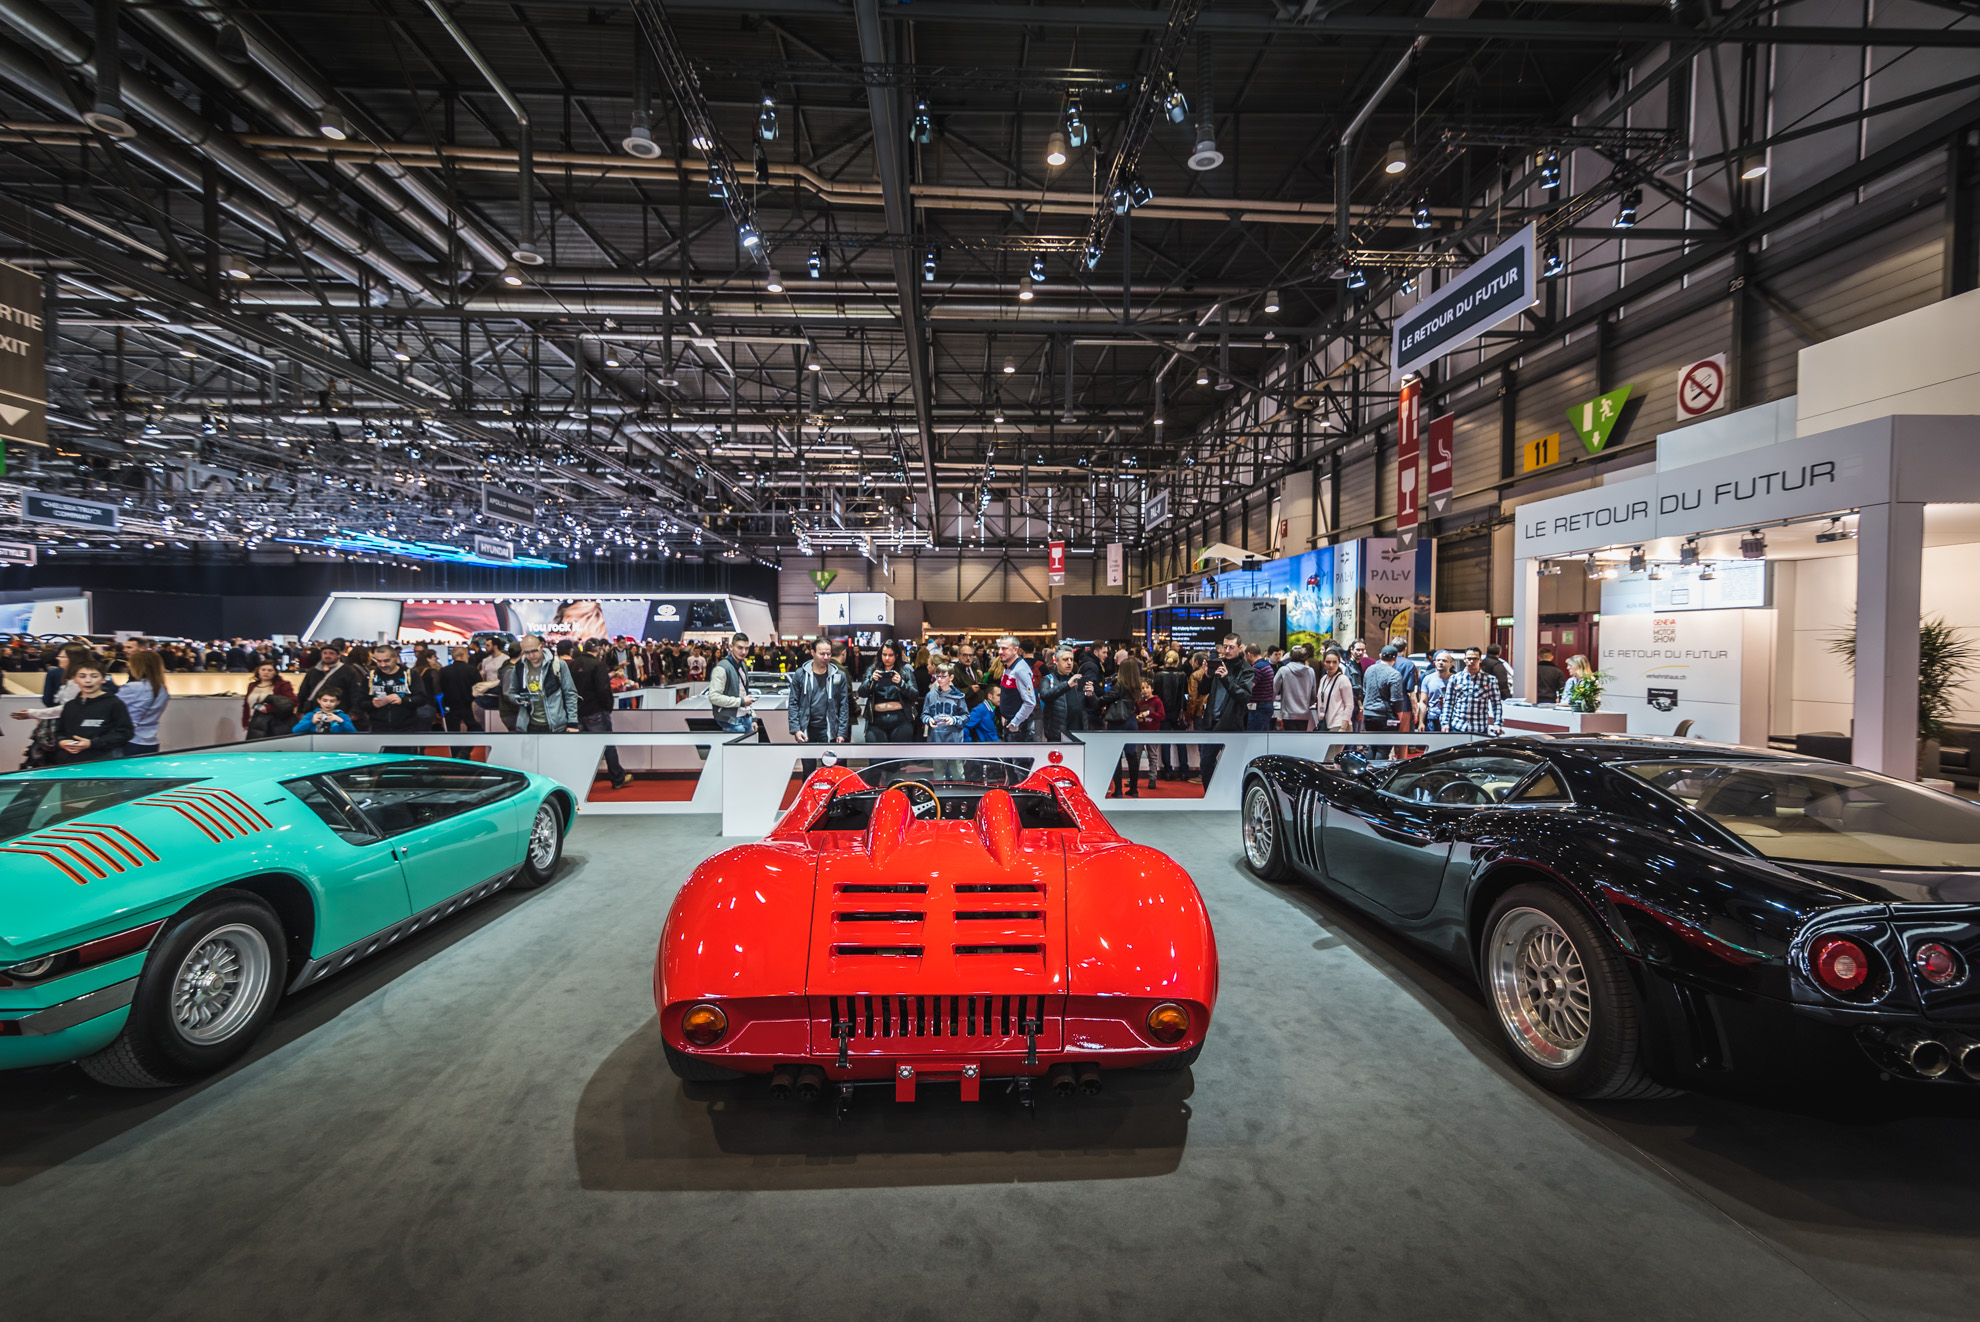 geneva-international-motor-show-igors-sinitsins-13